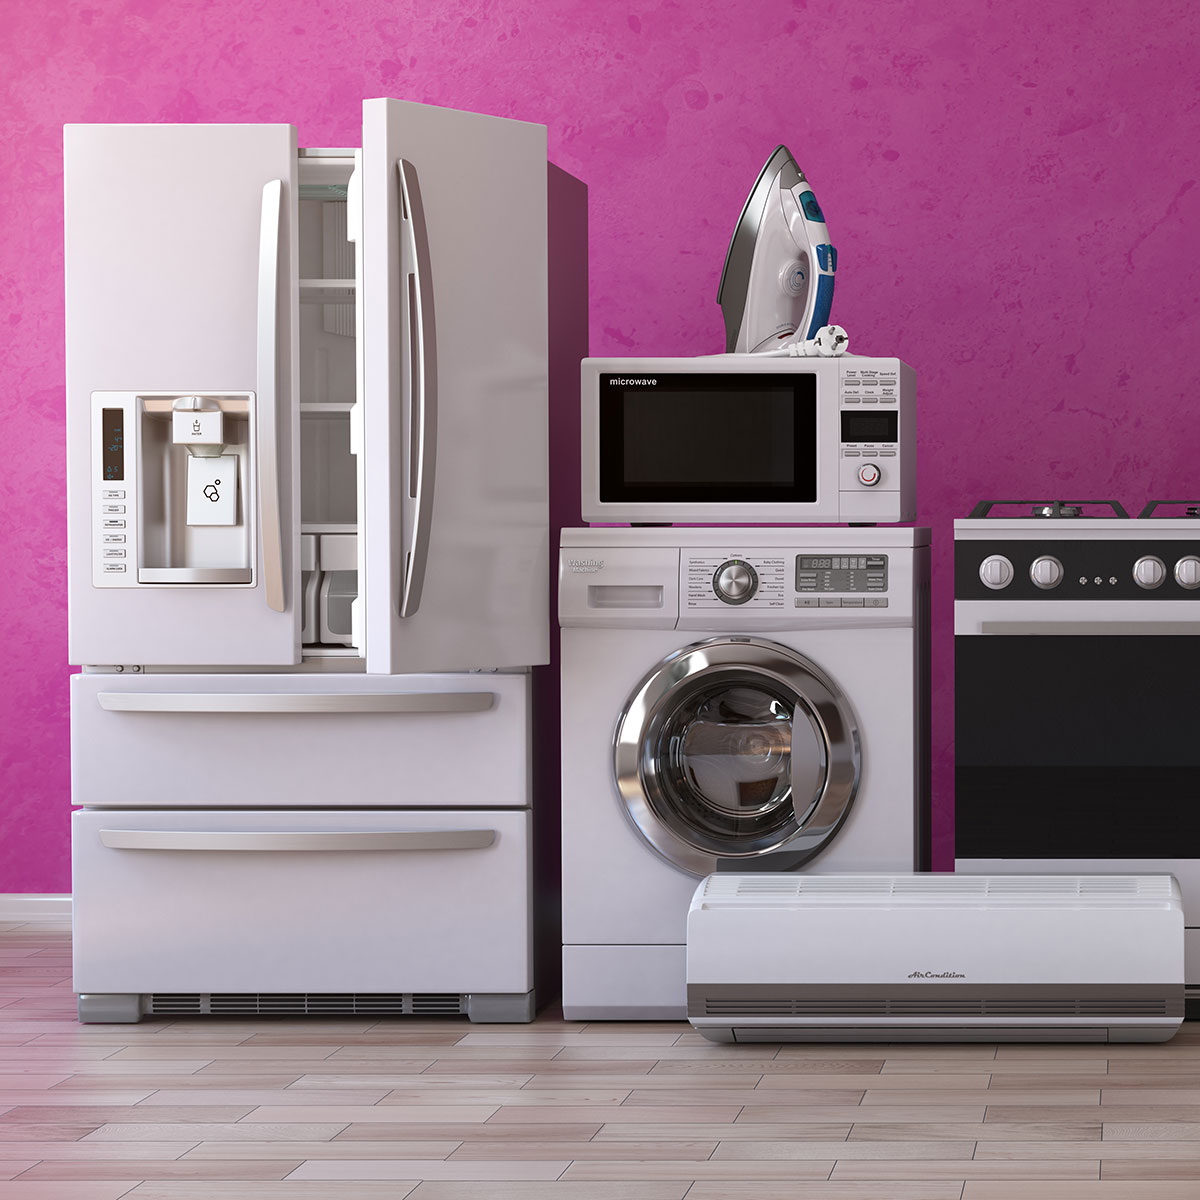 Nearly Half of Survey Respondents Want Energy Efficient Appliances in Their Homes